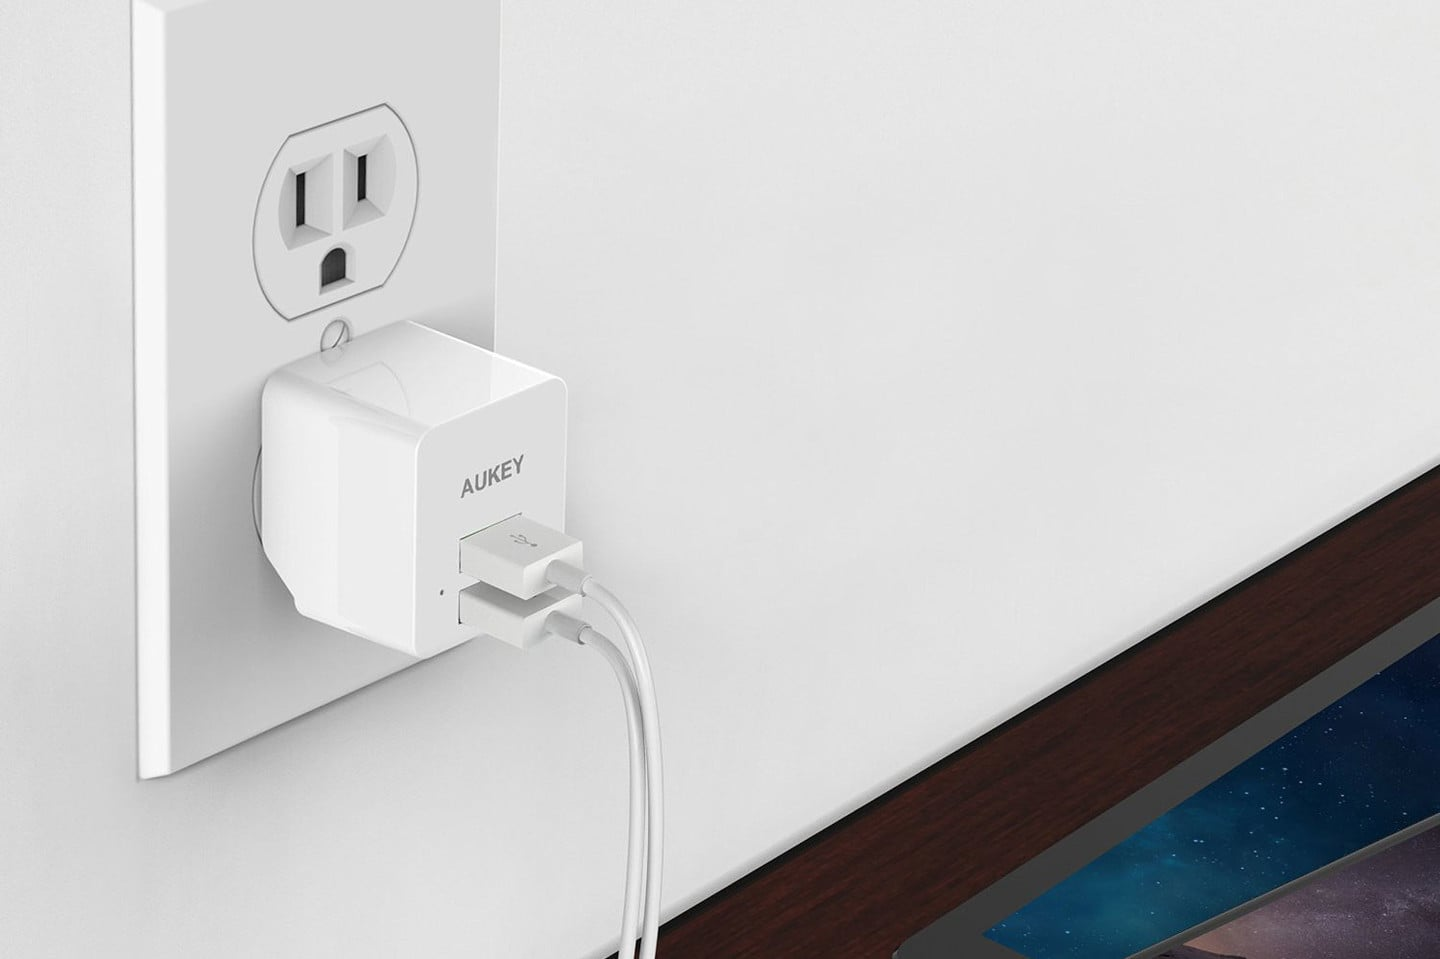 AUKEY Dual USB Wall Charger